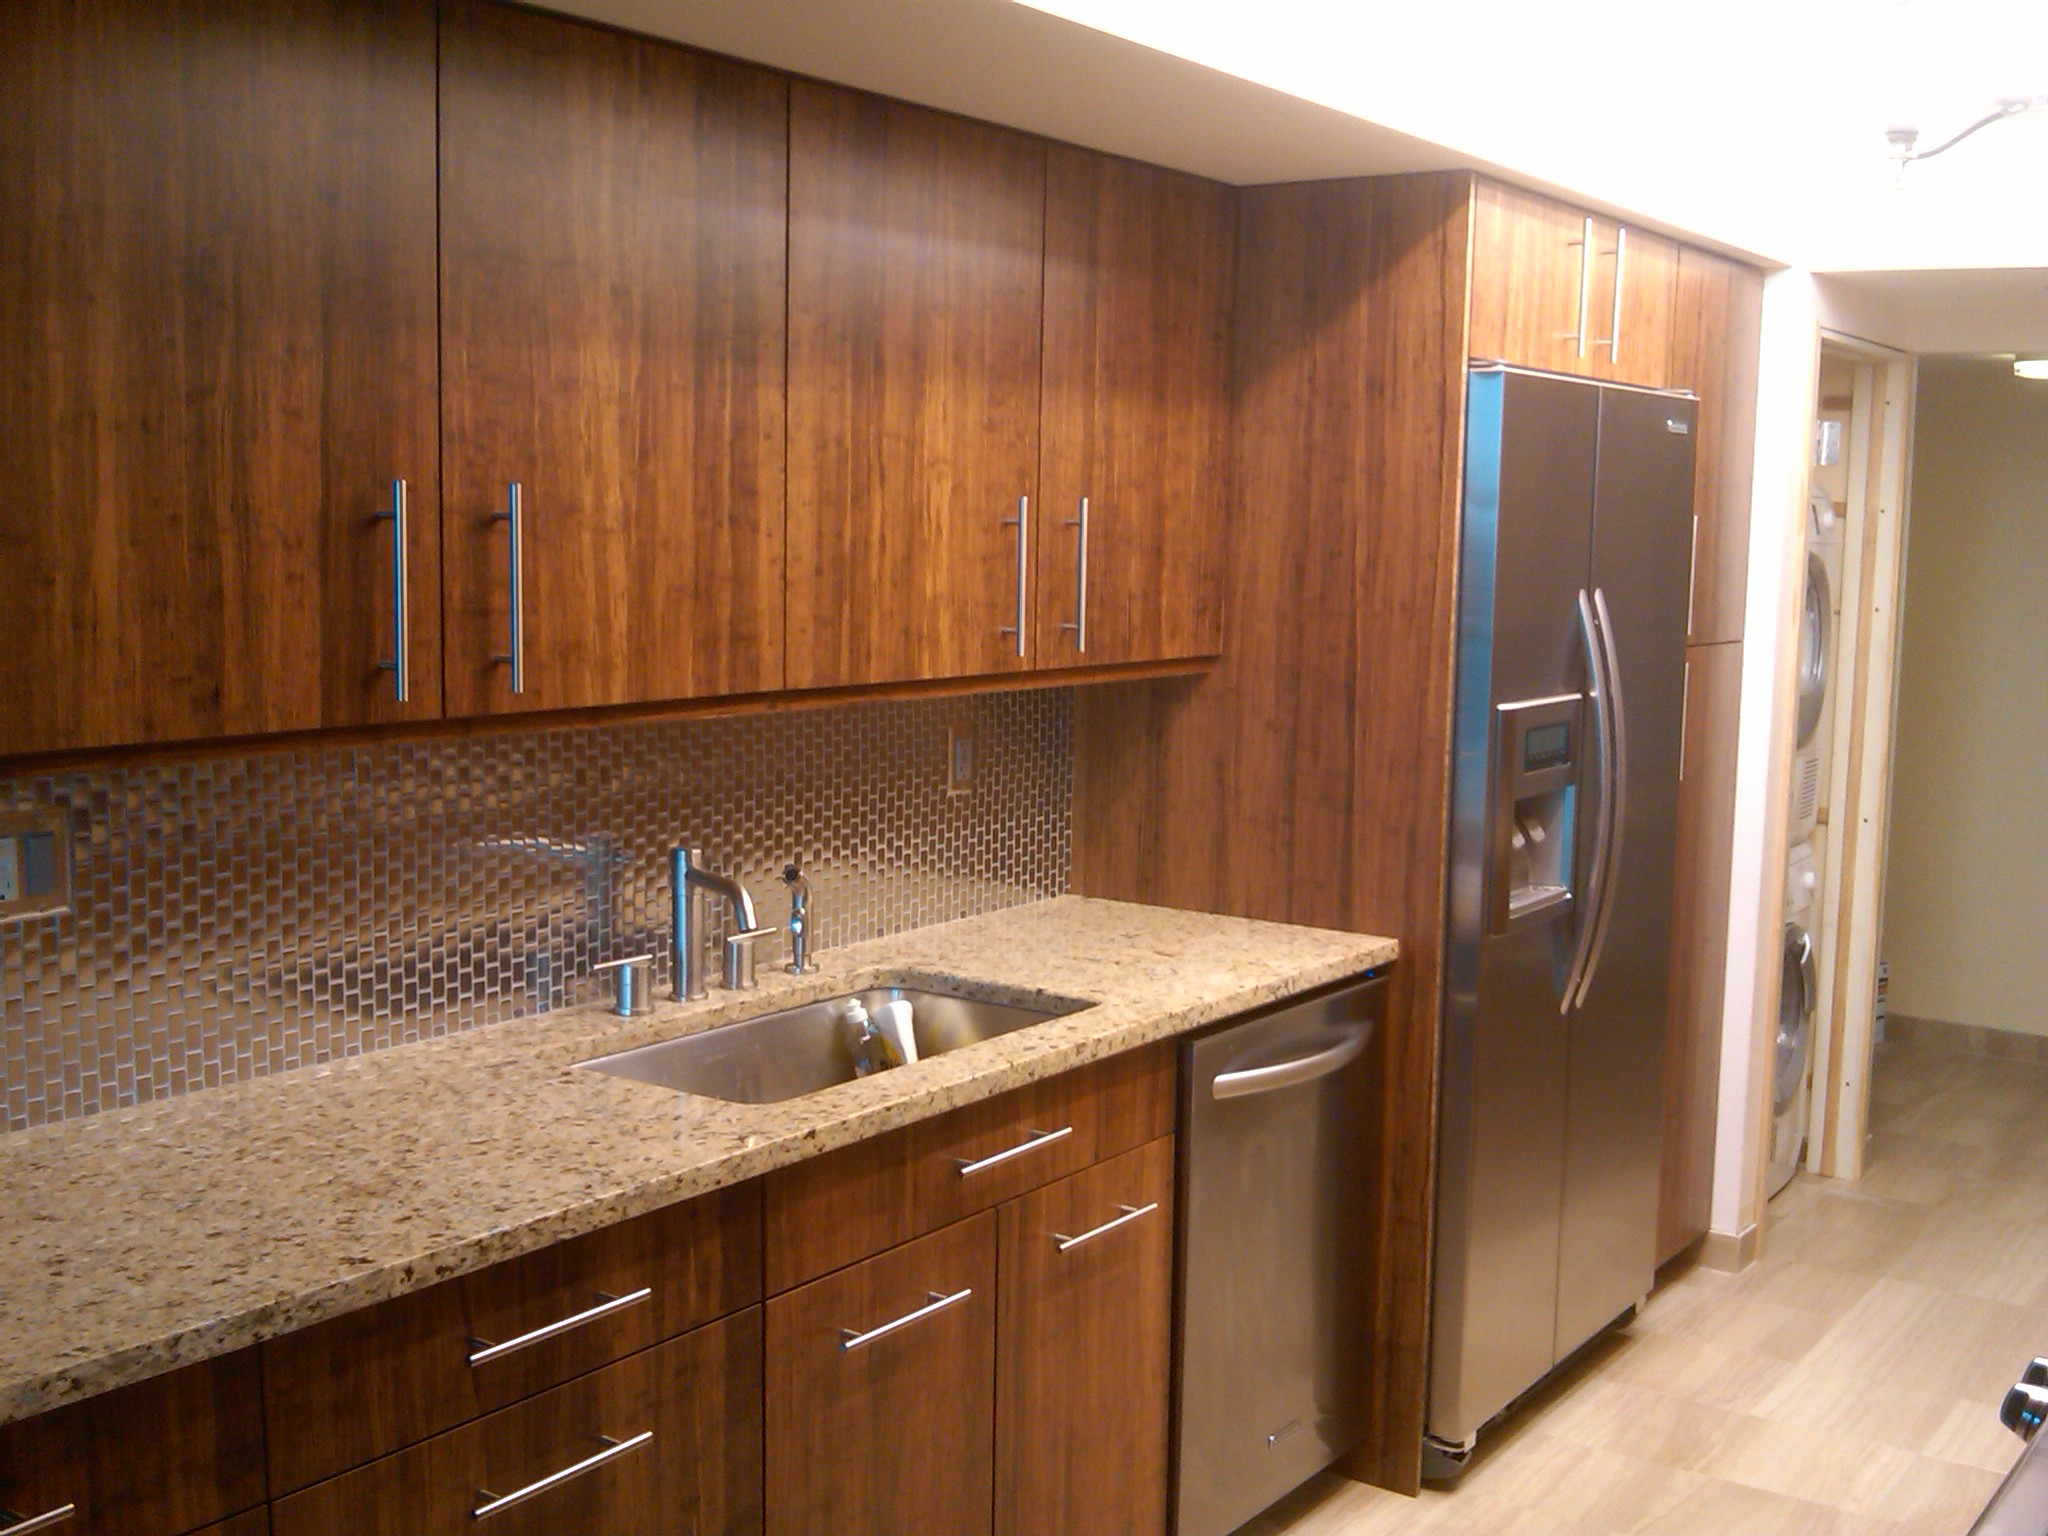 bamboo kitchen cabinets Fossilized carbonized bamboo kitchen View Larger Higher Quality Image